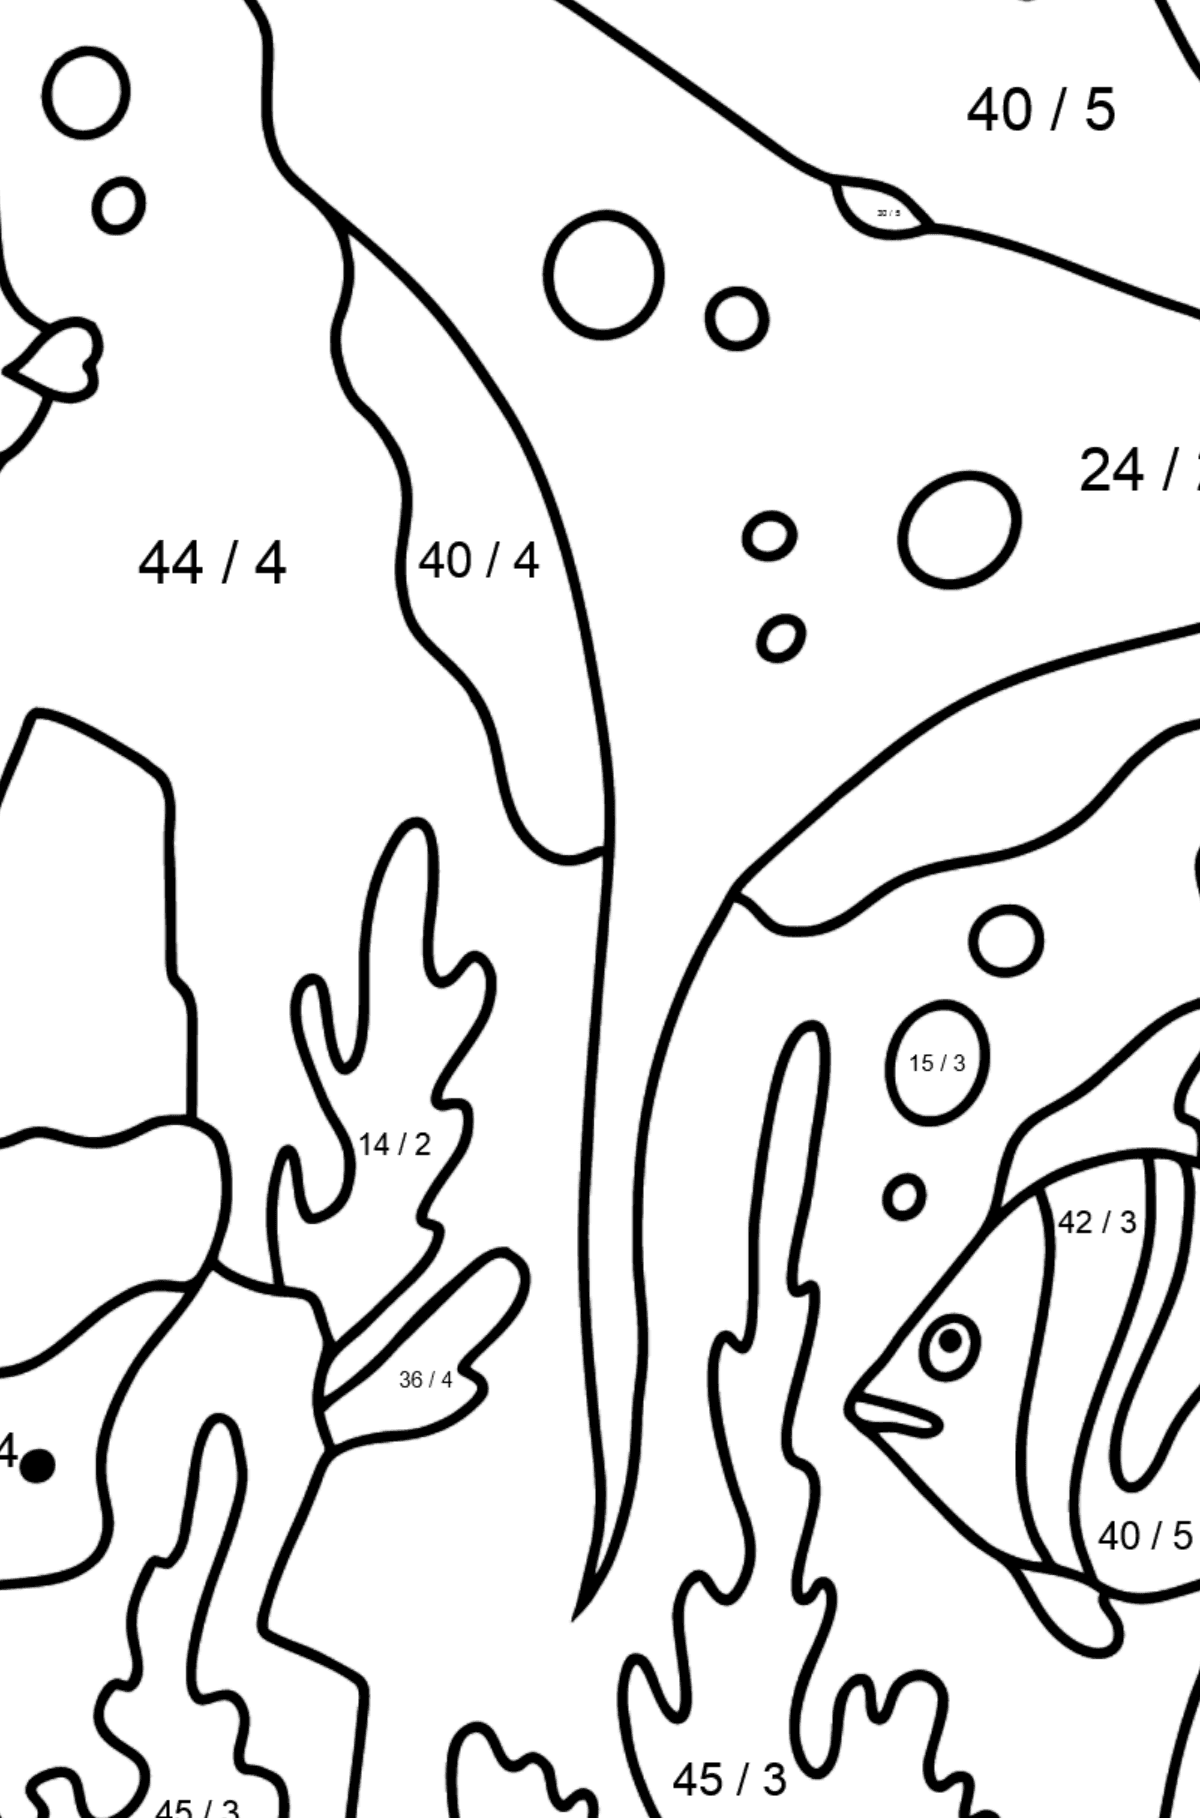 Coloring Page - Fish and Ray are Playing - Math Coloring - Division for Kids